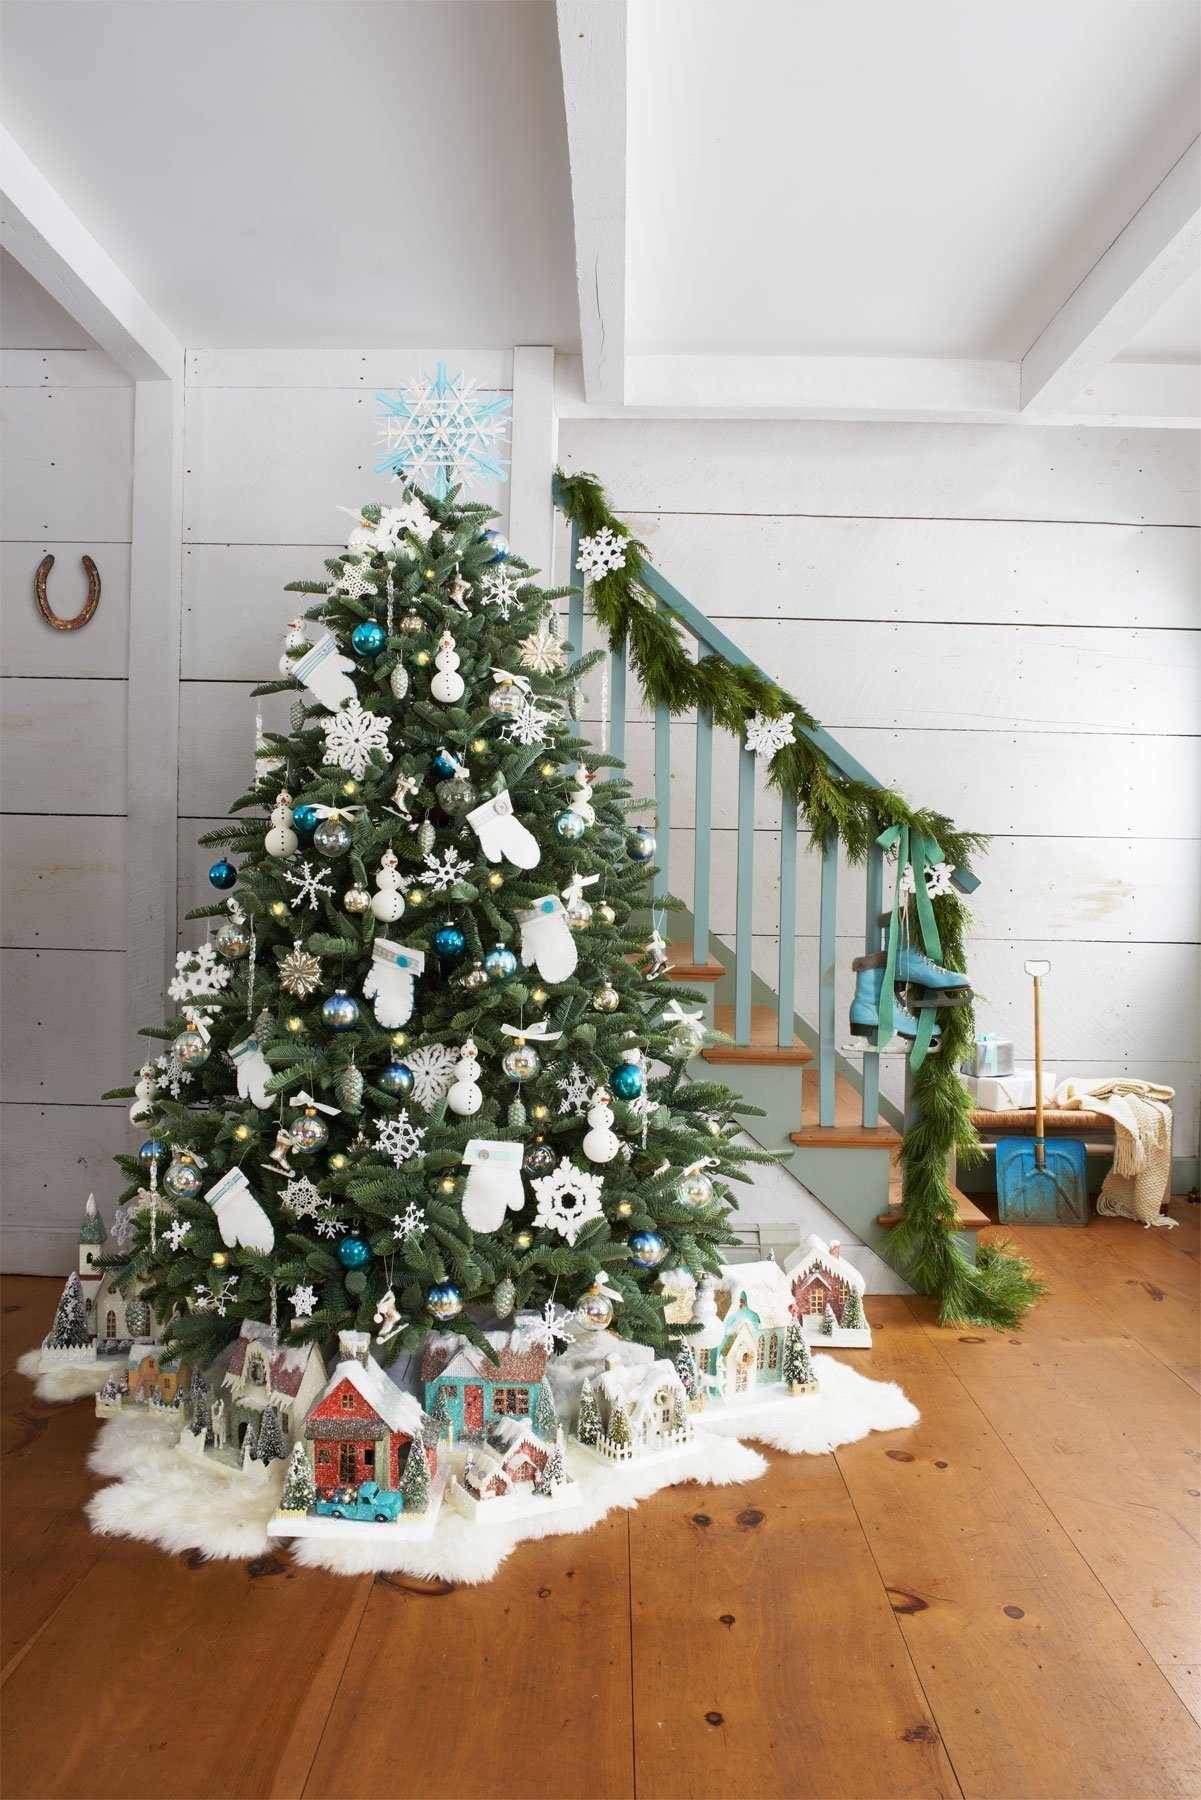 10 Fashionable Ideas To Decorate A Christmas Tree 60 christmas tree decorating ideas how to decorate a loversiq 1 2020